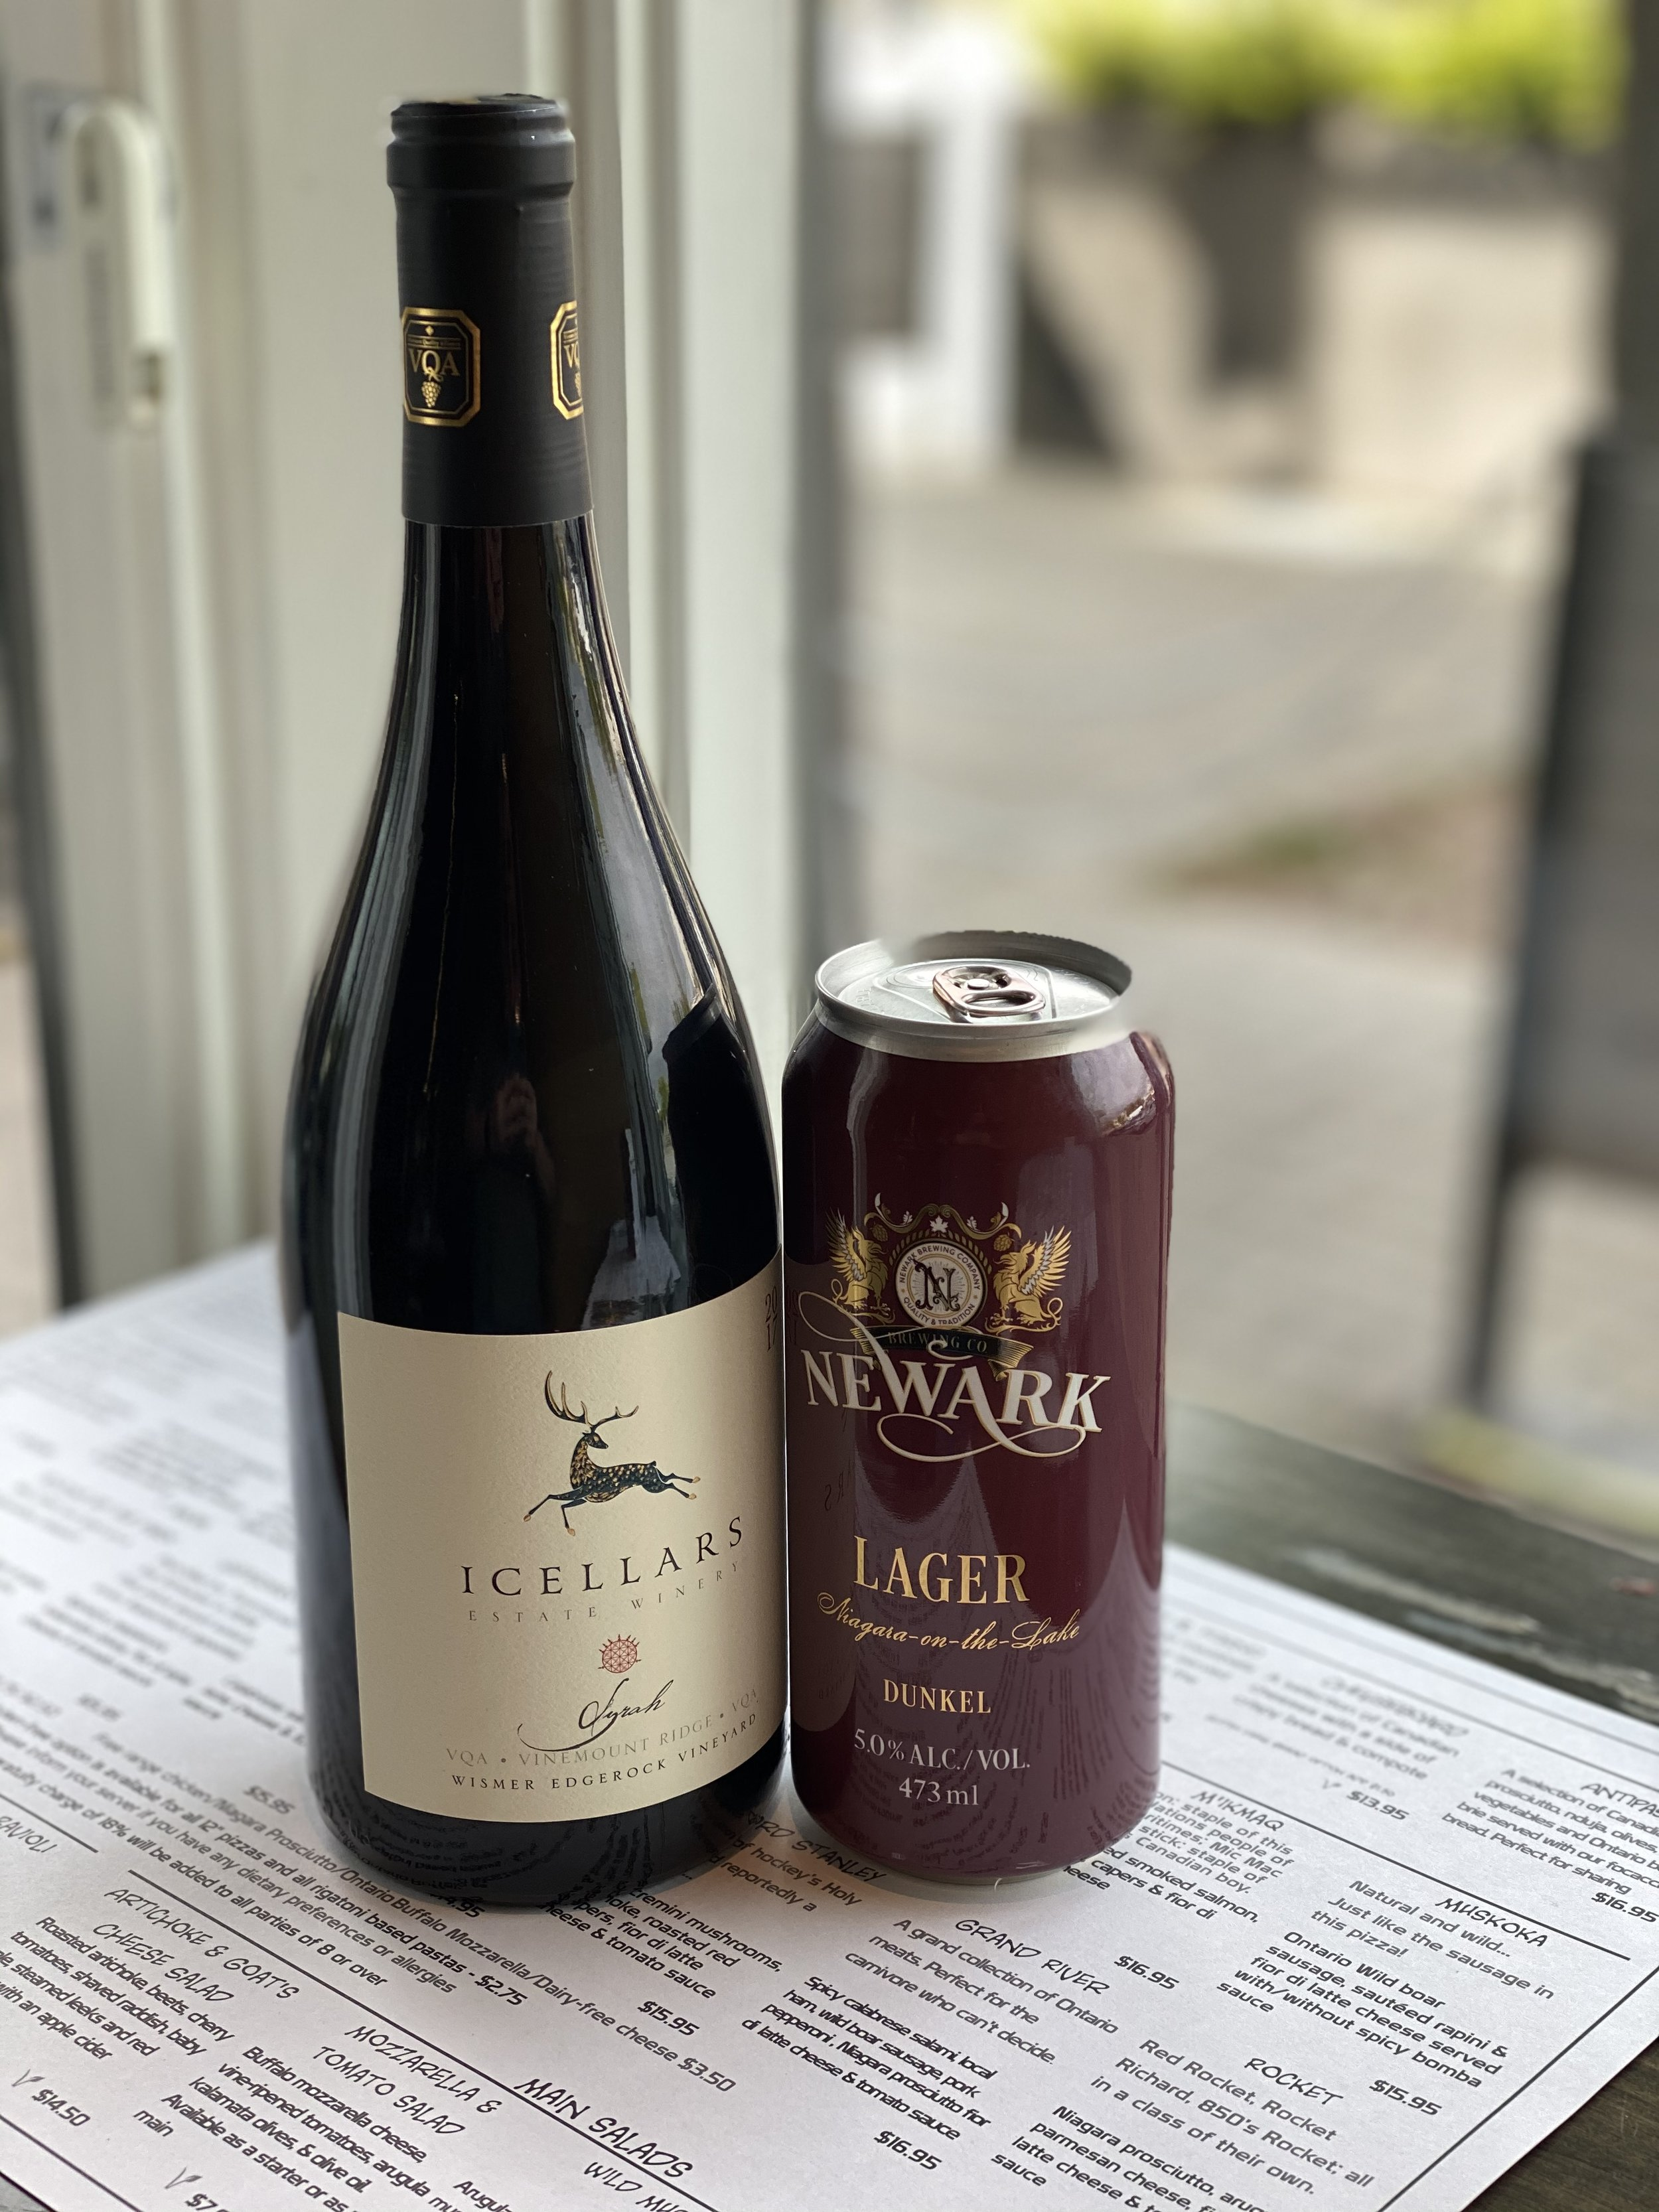 icellers syrah 2017 and Newarks Dunkel